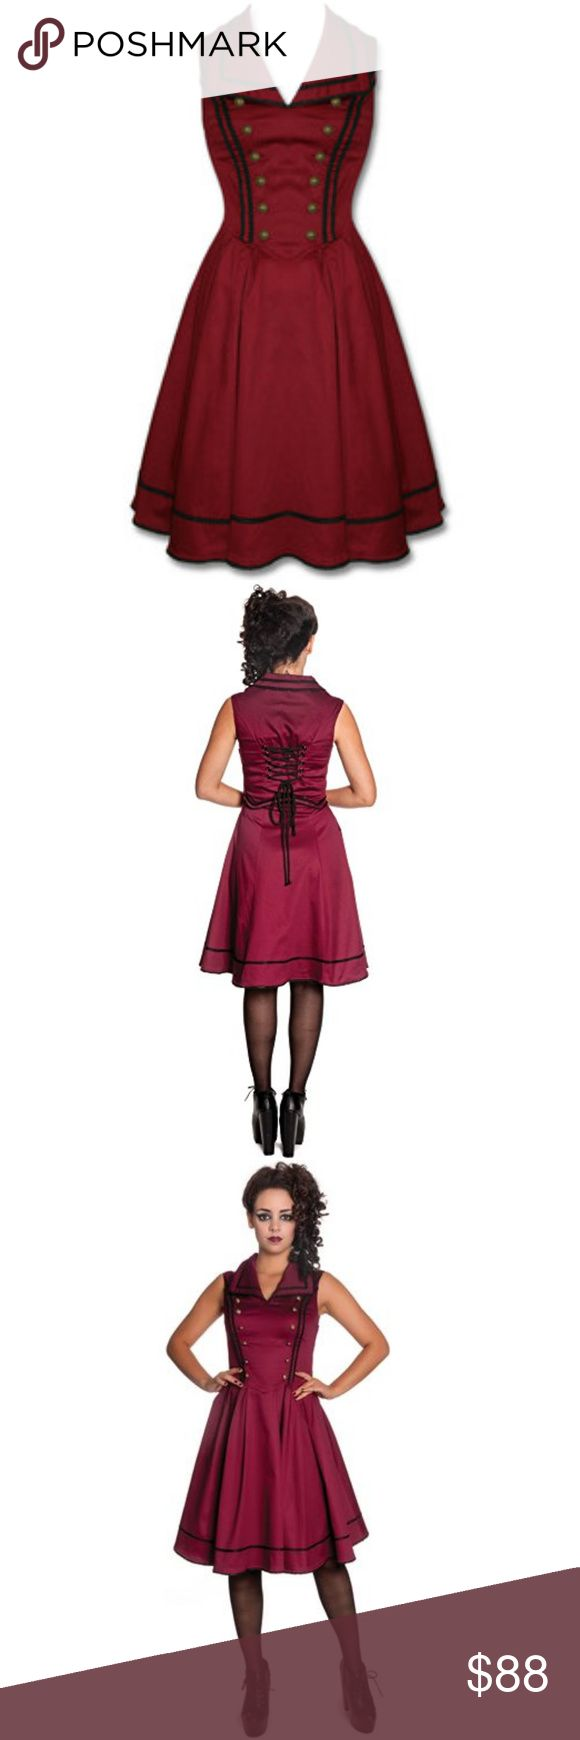 NEW Spin Doctor Nastasya Burgundy Steampunk Dress New With Tags Spin Doctor Nastasya Dress comes in Burgundy X-Small  The fabric on this steampunk dress is cotton sateen, with a little stretch. The bodice is shaped and trimmed with black braid and rope. Either side of the front are bronze tone buttons for effect. The back has a corset effect detail with black rope through metal eyelets.  X-SMALL Measurements are taken directly from the dress itself: *Bust-32 inches *Waist-28 inches Spin…